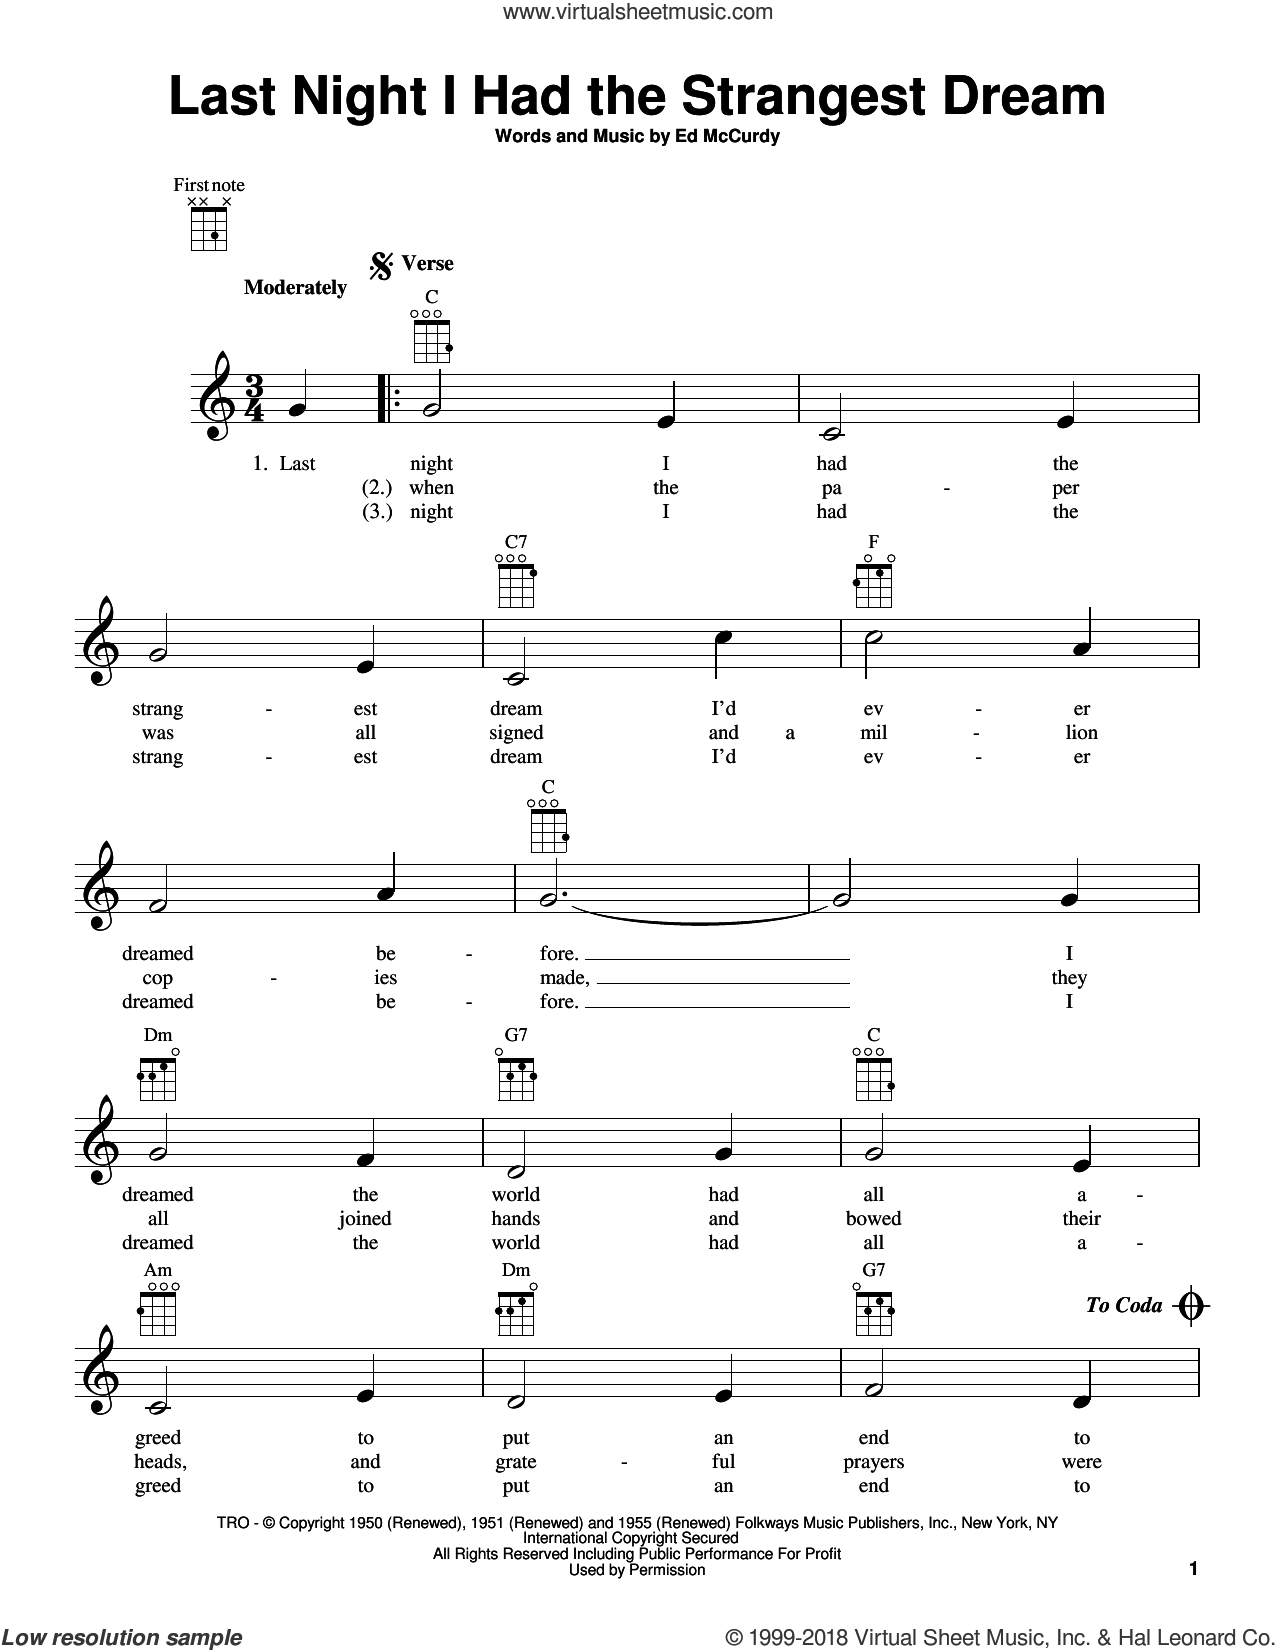 Last Night I Had The Strangest Dream sheet music for ukulele by Ed McCurdy and Simon & Garfunkel, intermediate skill level